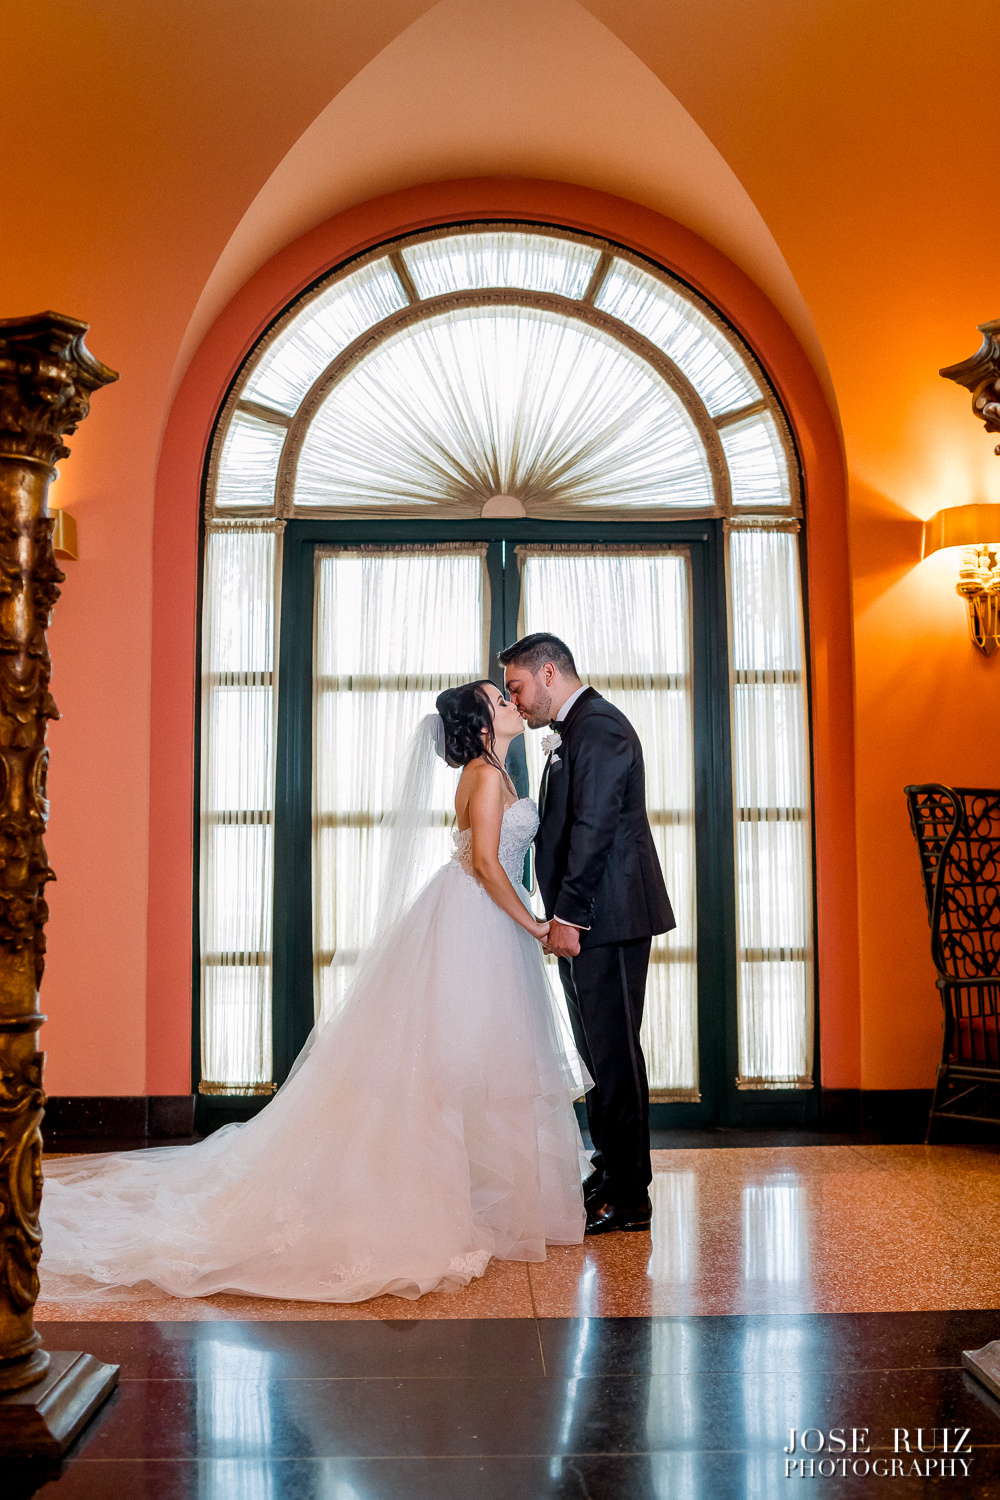 Jose Ruiz Photography- Madalyn & Joel-0036.jpg